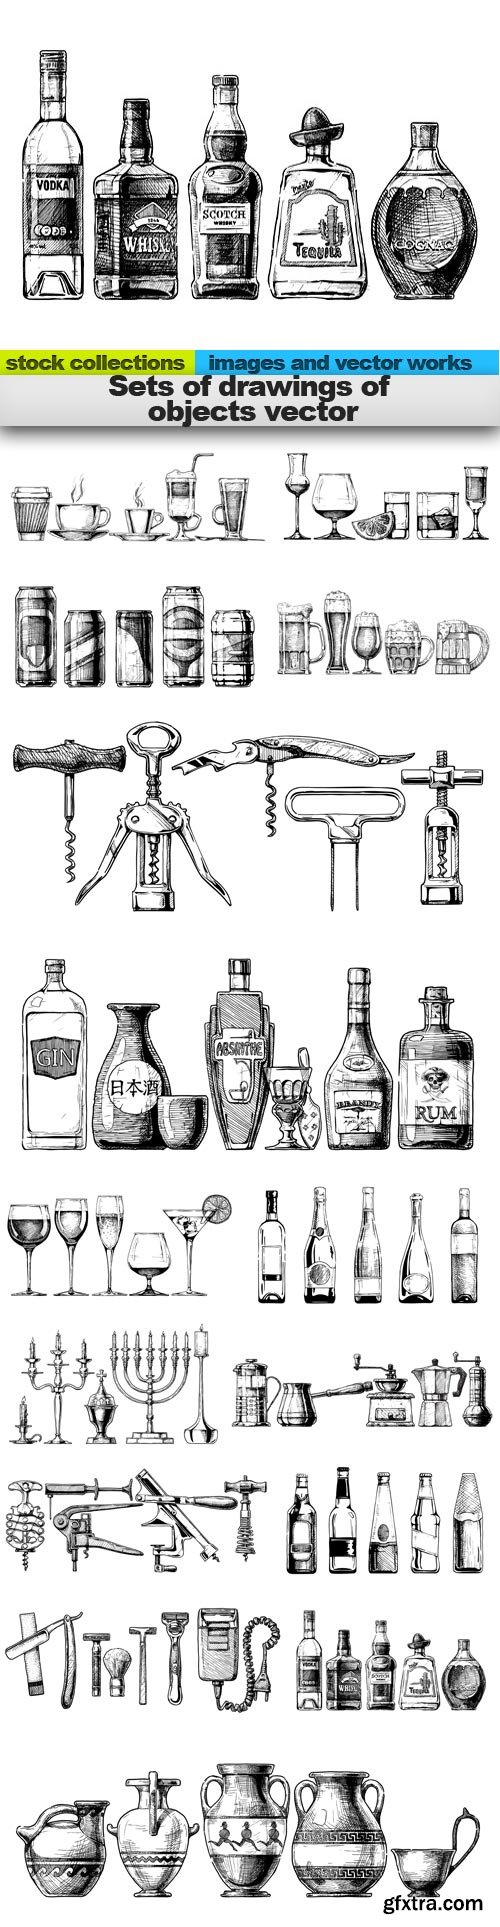 Sets of drawings of objects vector, 15 x EPS